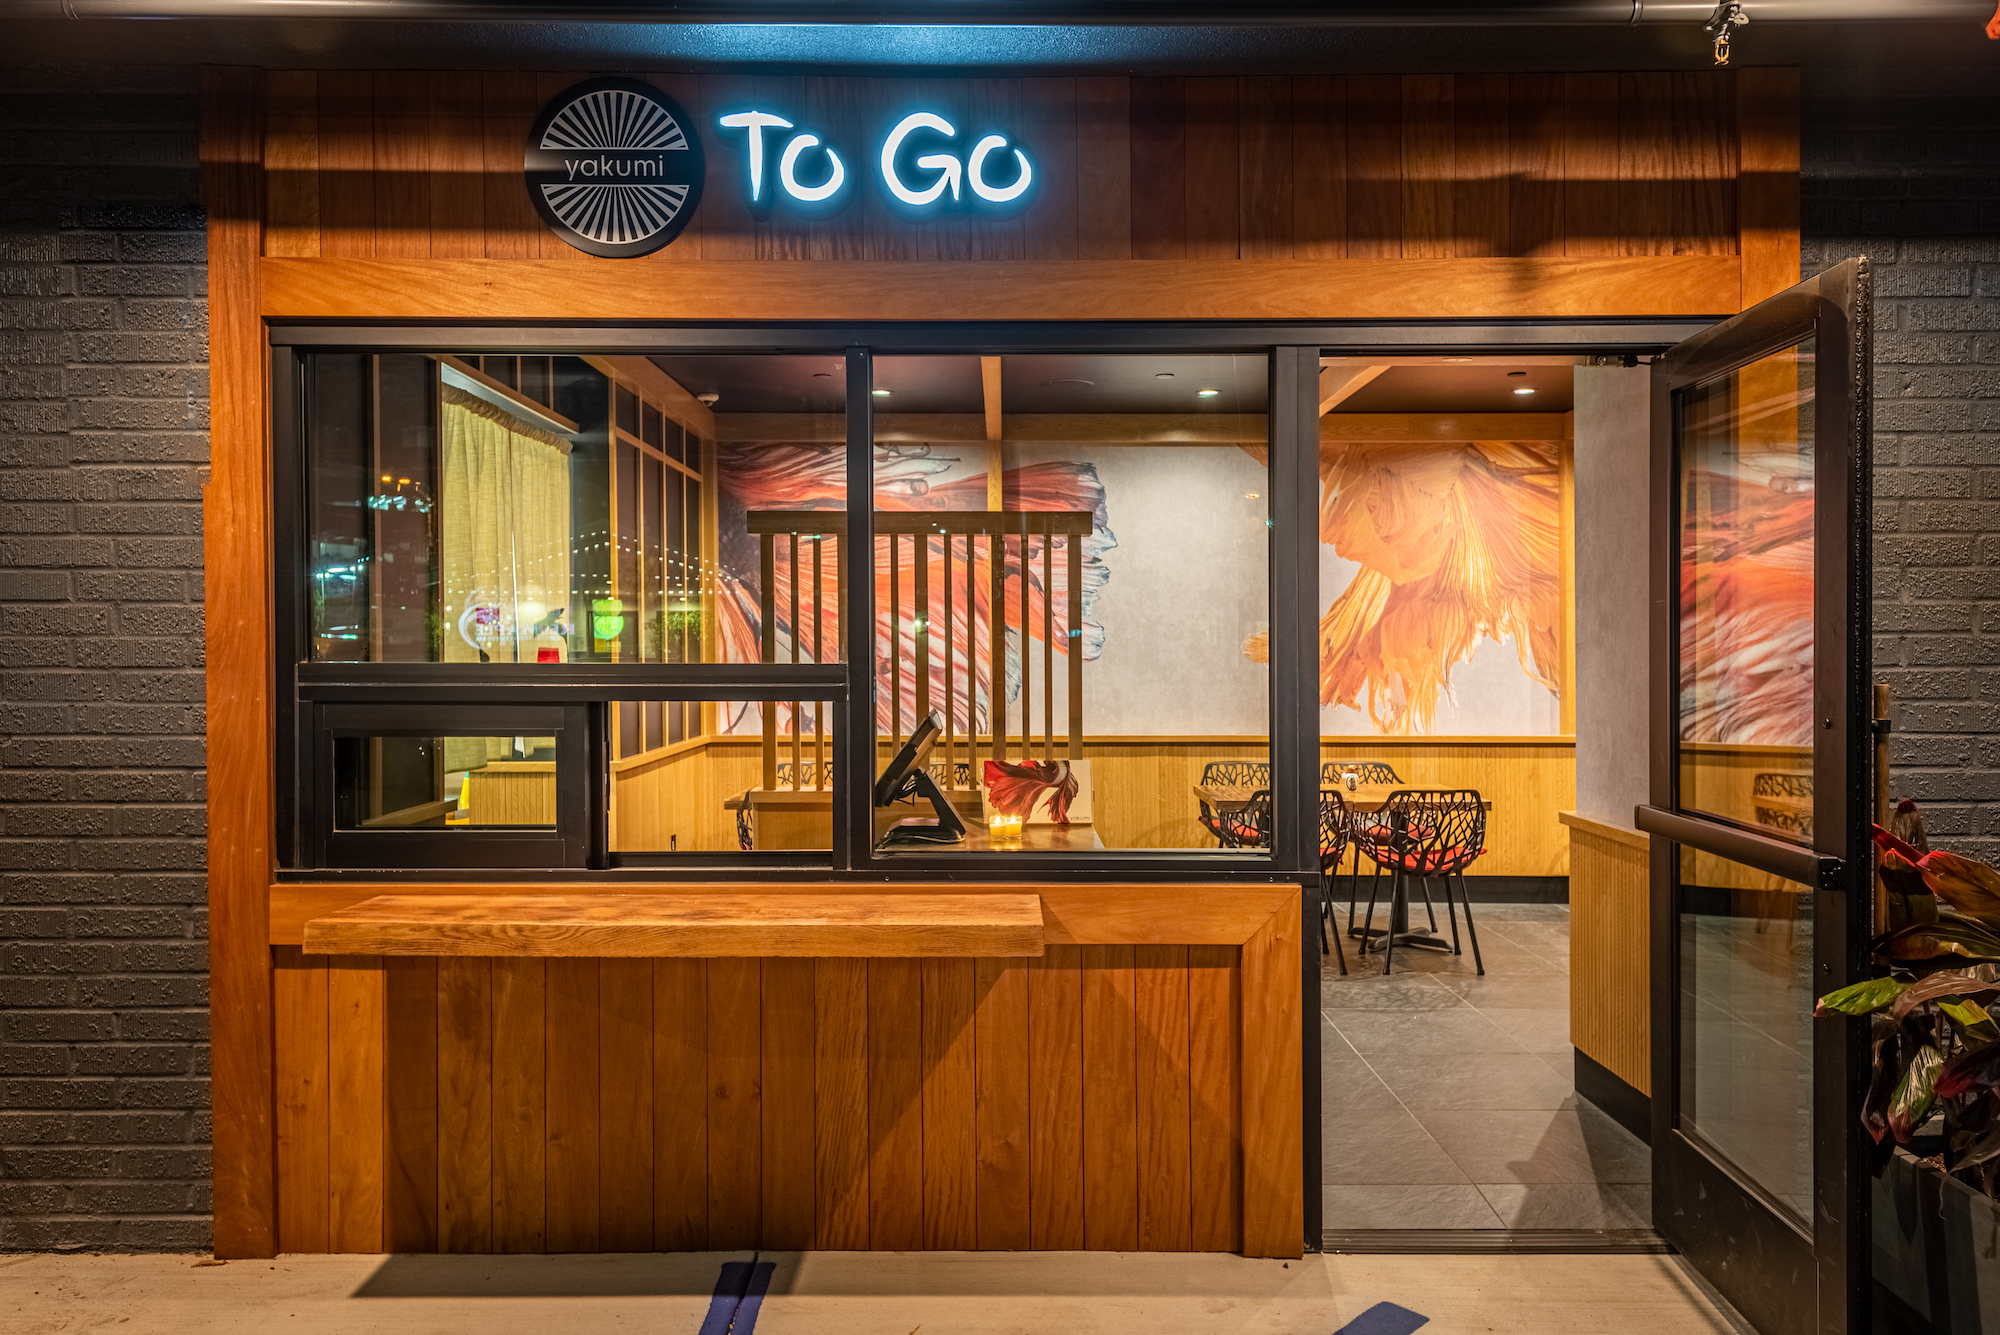 A takeout/to-go window wrapped in wood for a new sushi restaurant, at night.